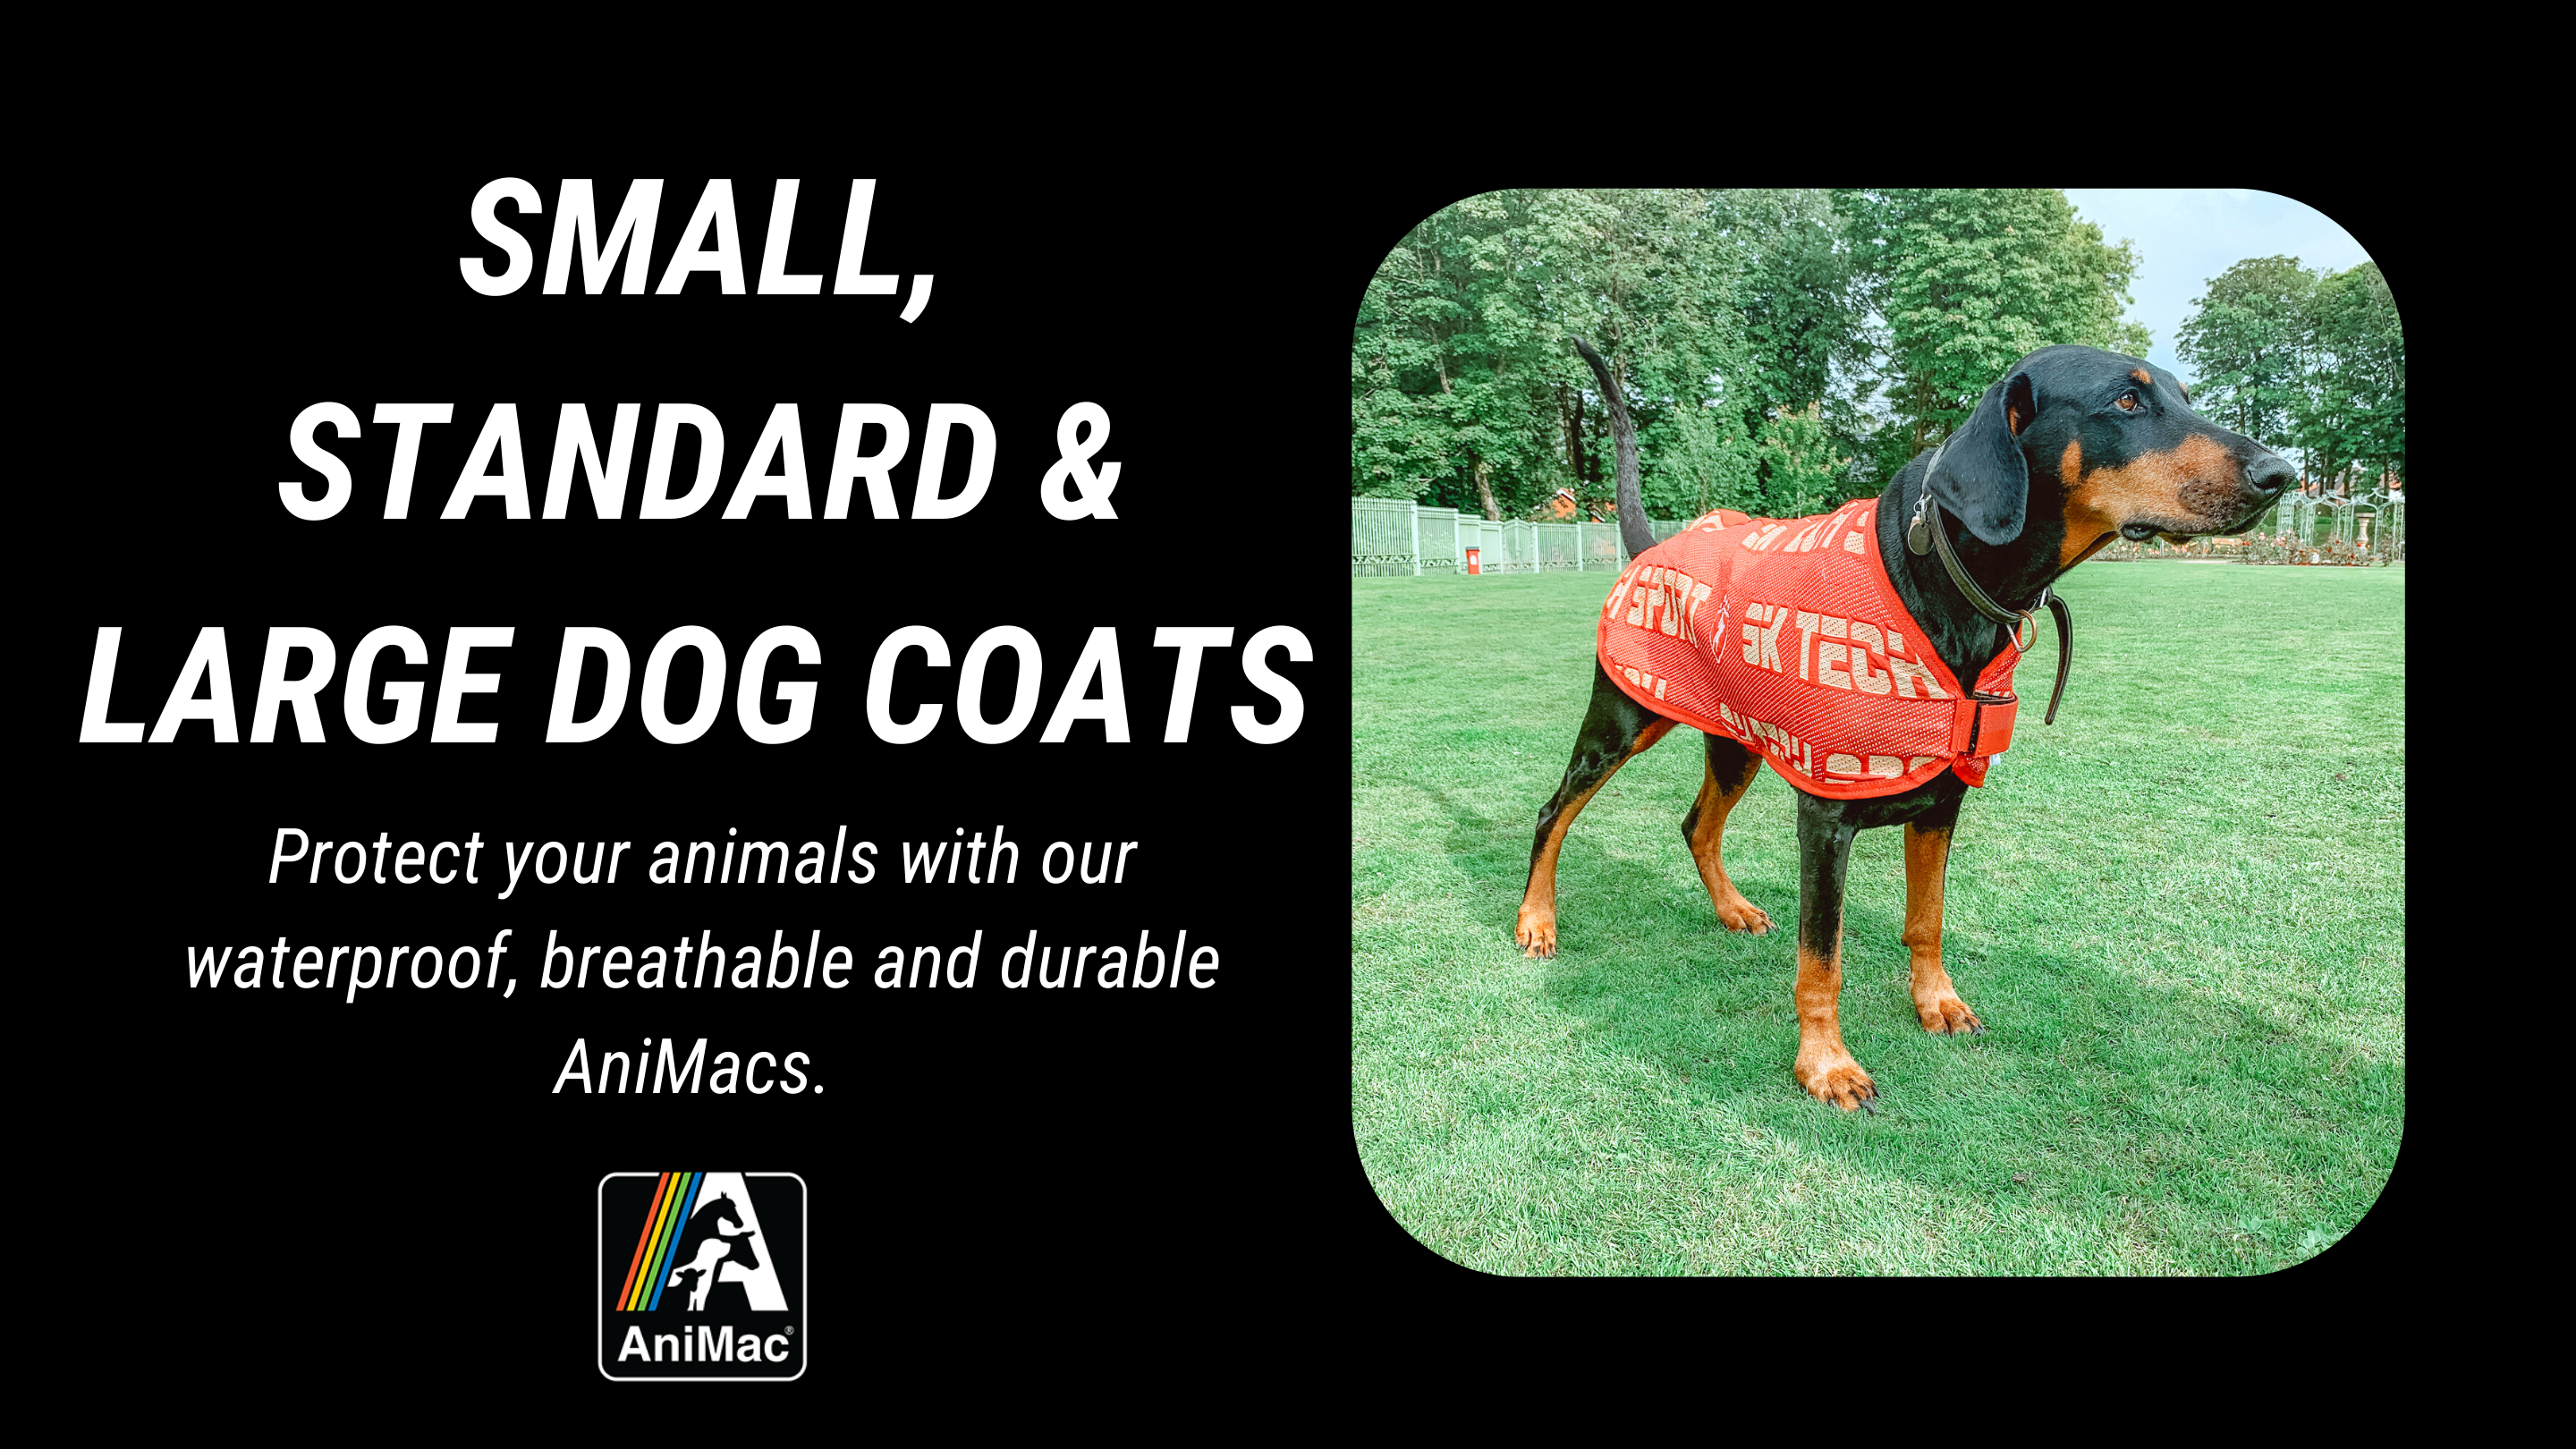 AniMac waterproof dog coats for small, medium and large dogs